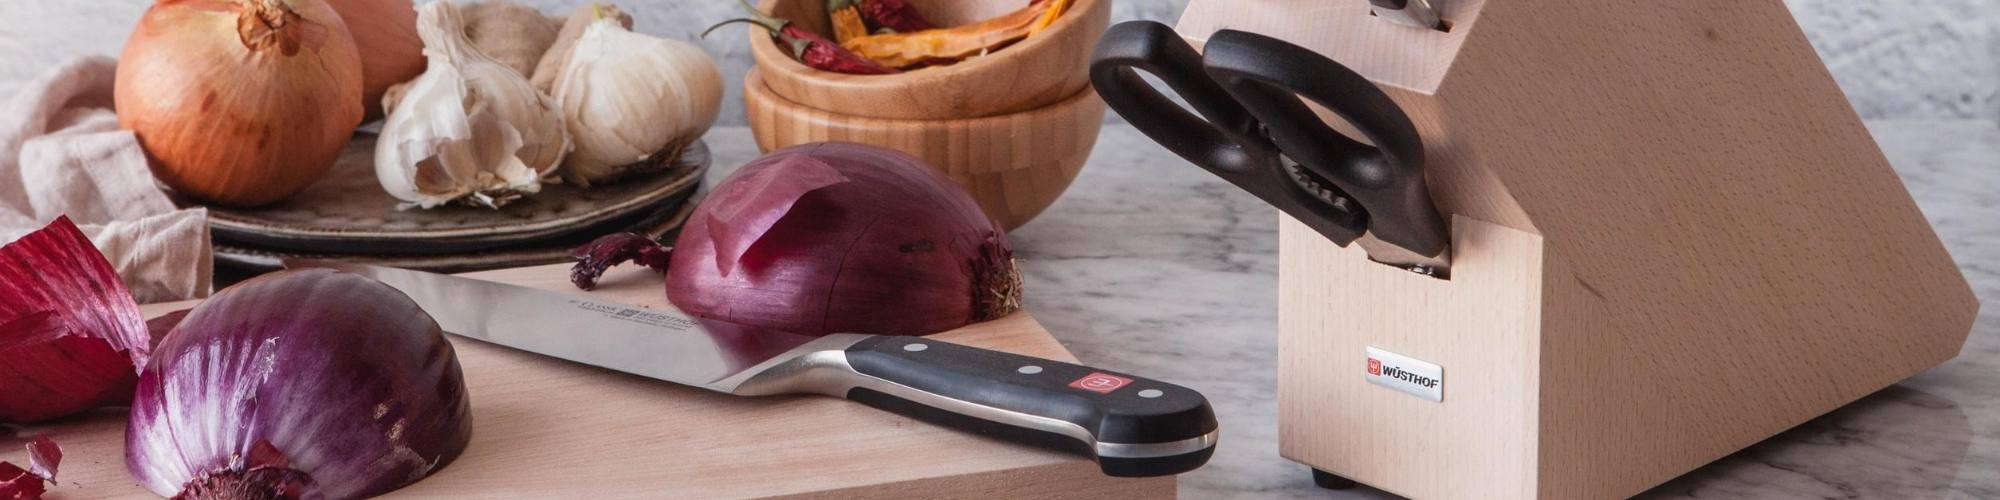 Monthly Knife Sharpening Service in Toronto at Cookery